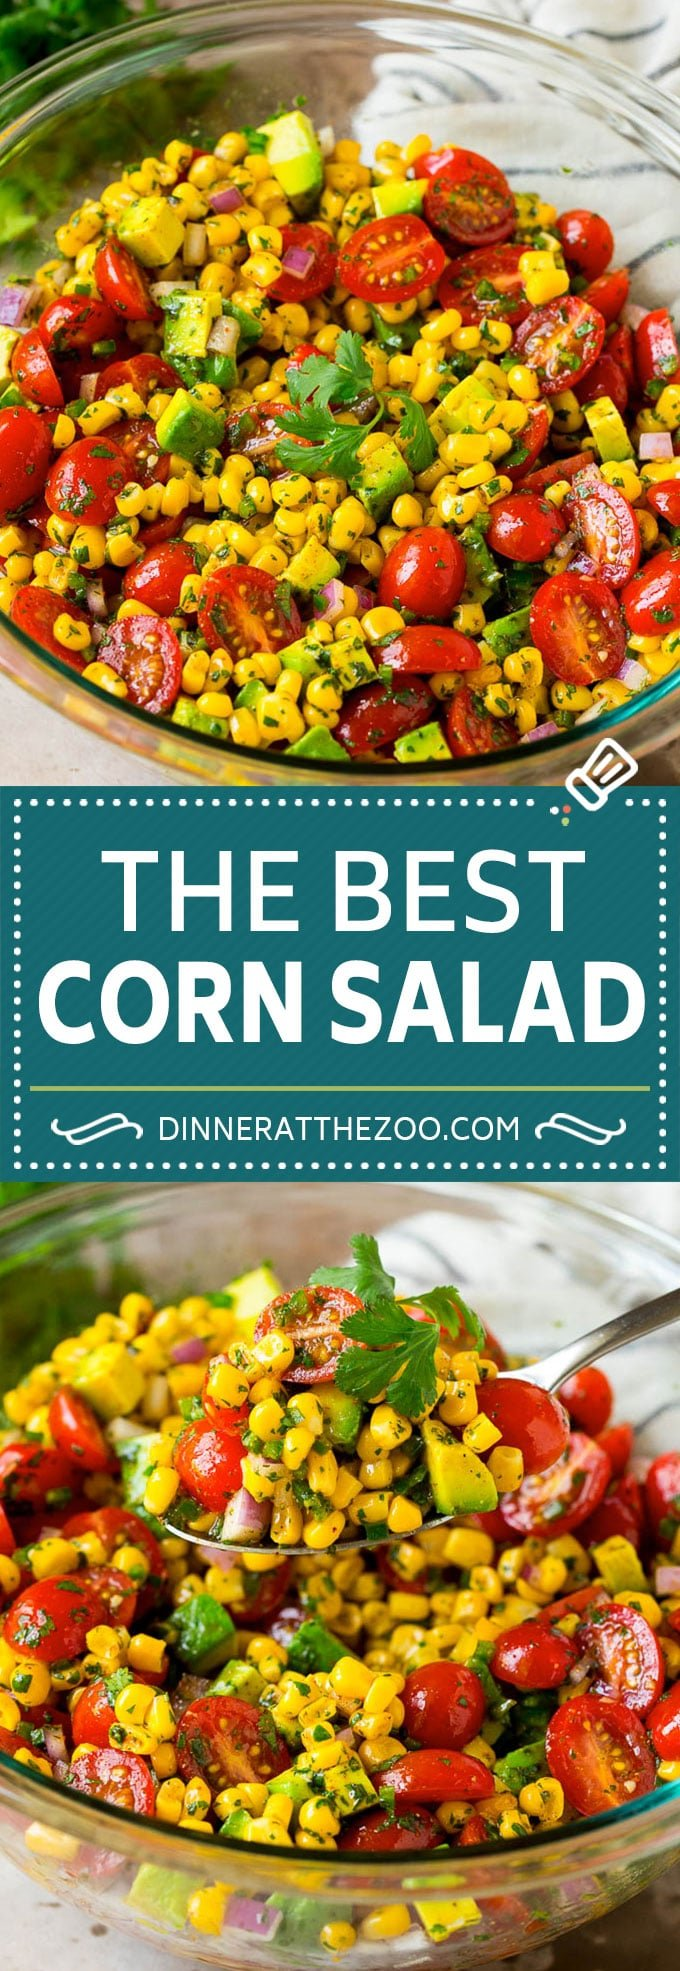 Easy corn salad with tomato and avocado, all tossed in a zesty lime dressing.